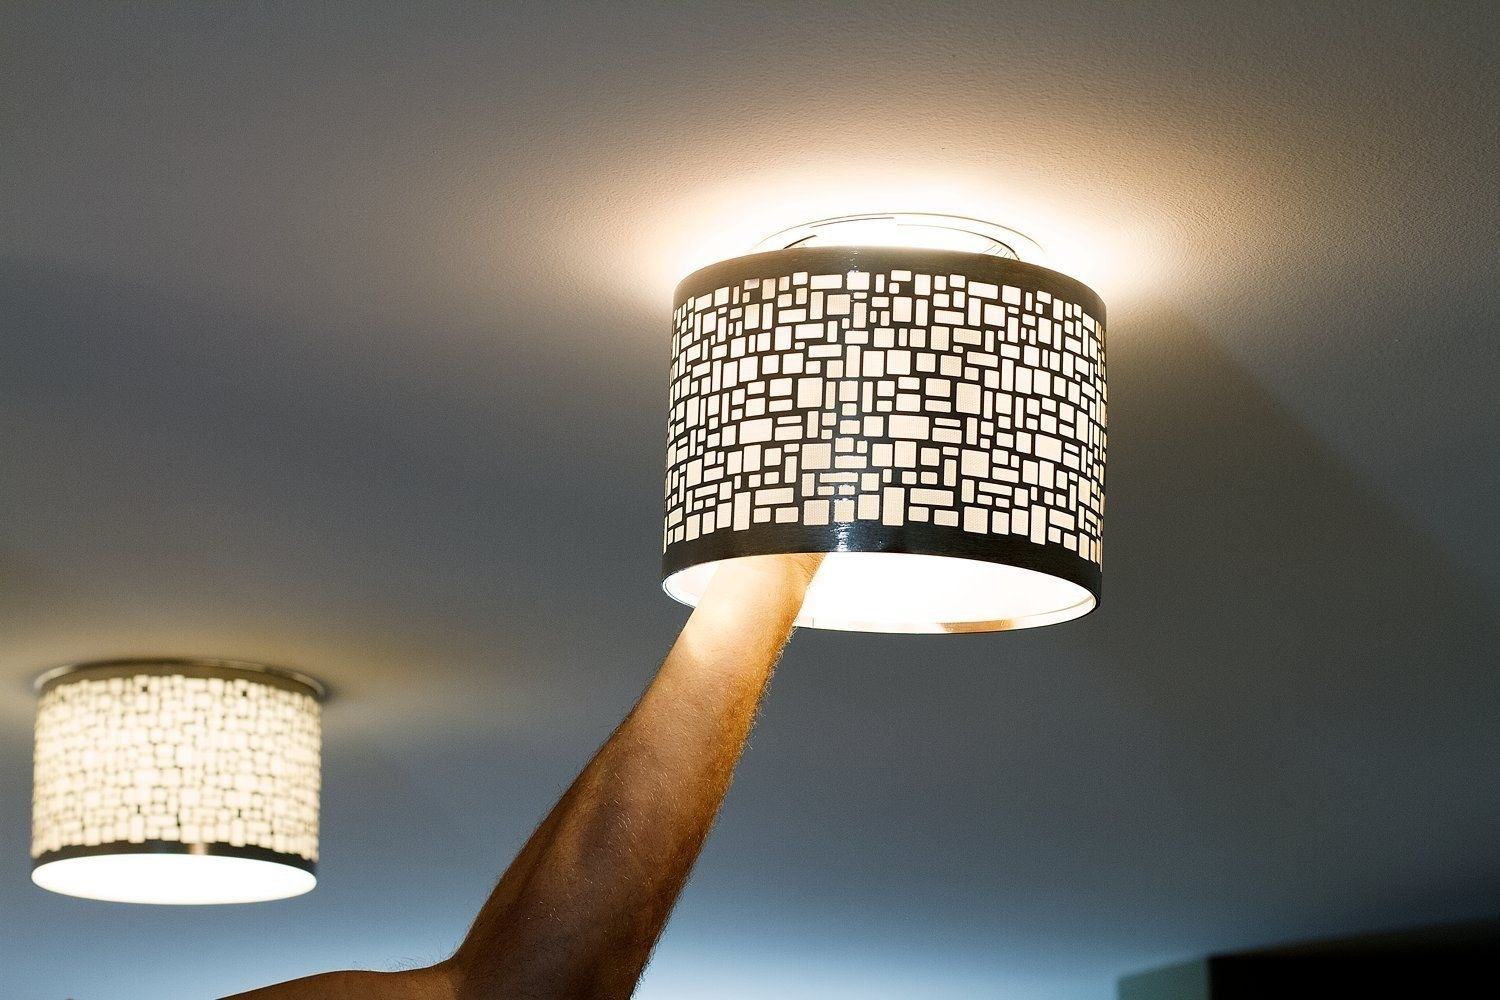 5 minute light upgrade converting a recessed light to a pendant 5 minute light upgrade converting a recessed light to a pendant pretty handy girl kitchen pinterest pendants lights and pendant lighting dailygadgetfo Images